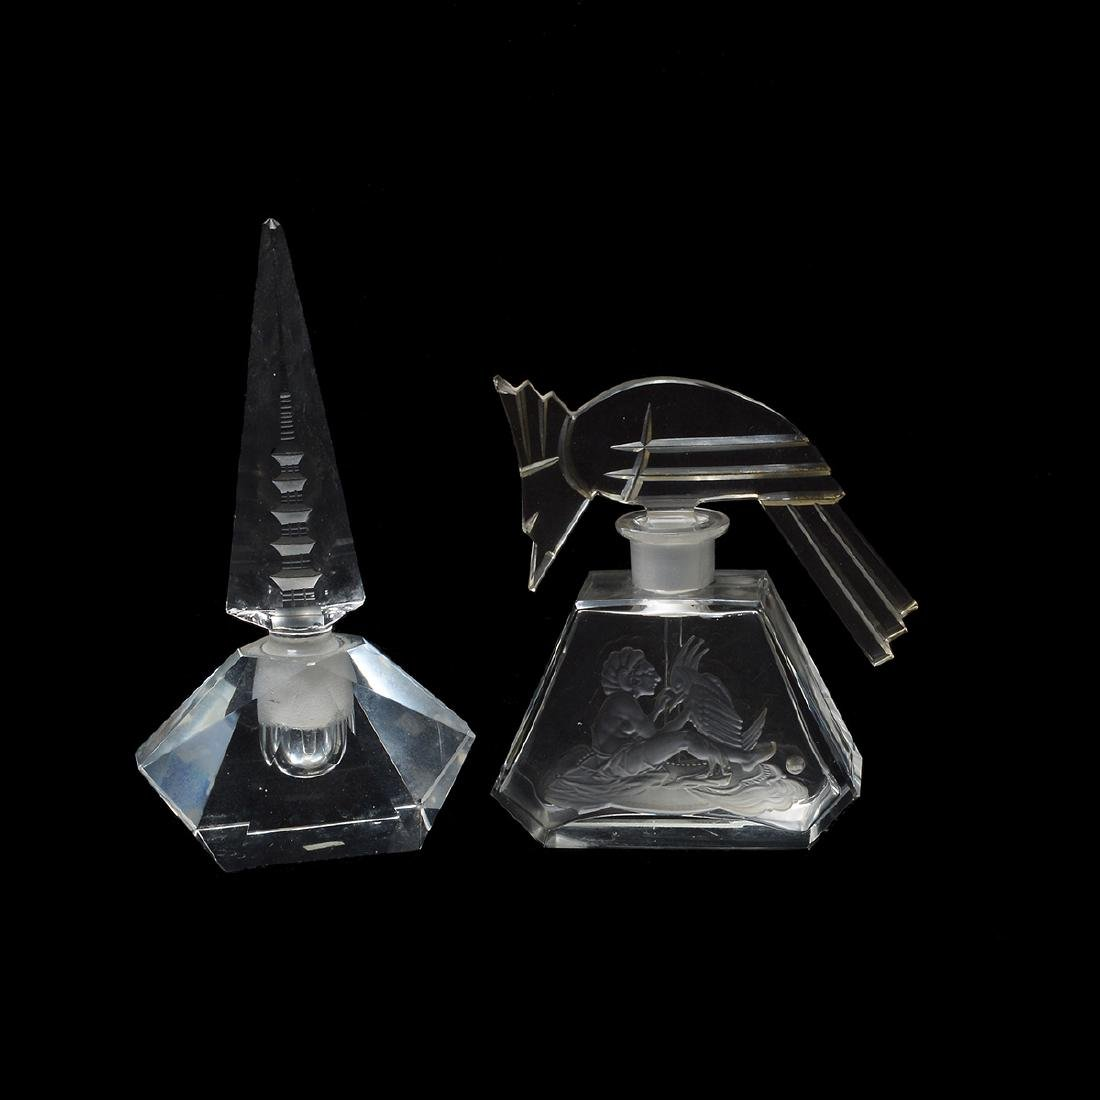 Two Large Cut Glass Perfume Bottles